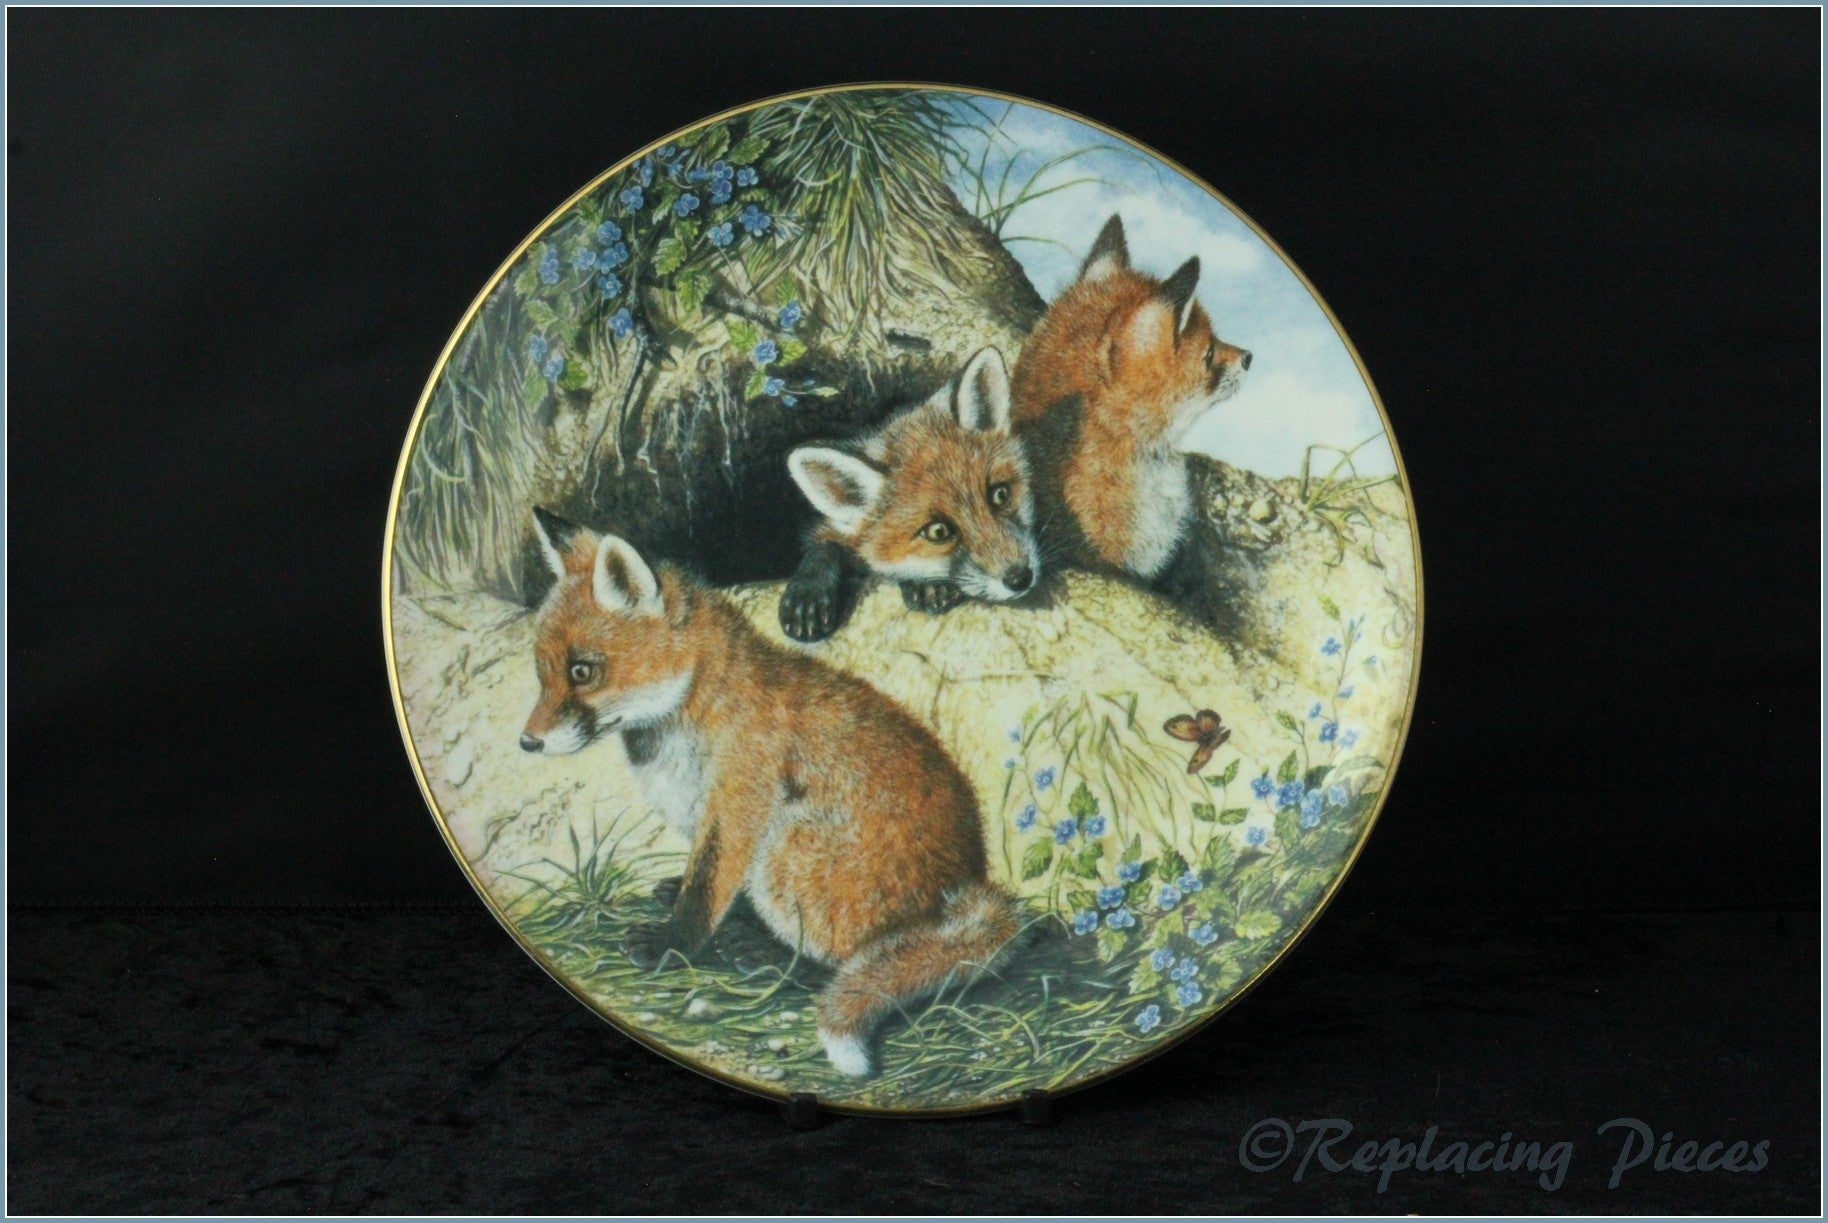 Royal Worcester - The Painted Seasons - The Little Fox Cubs